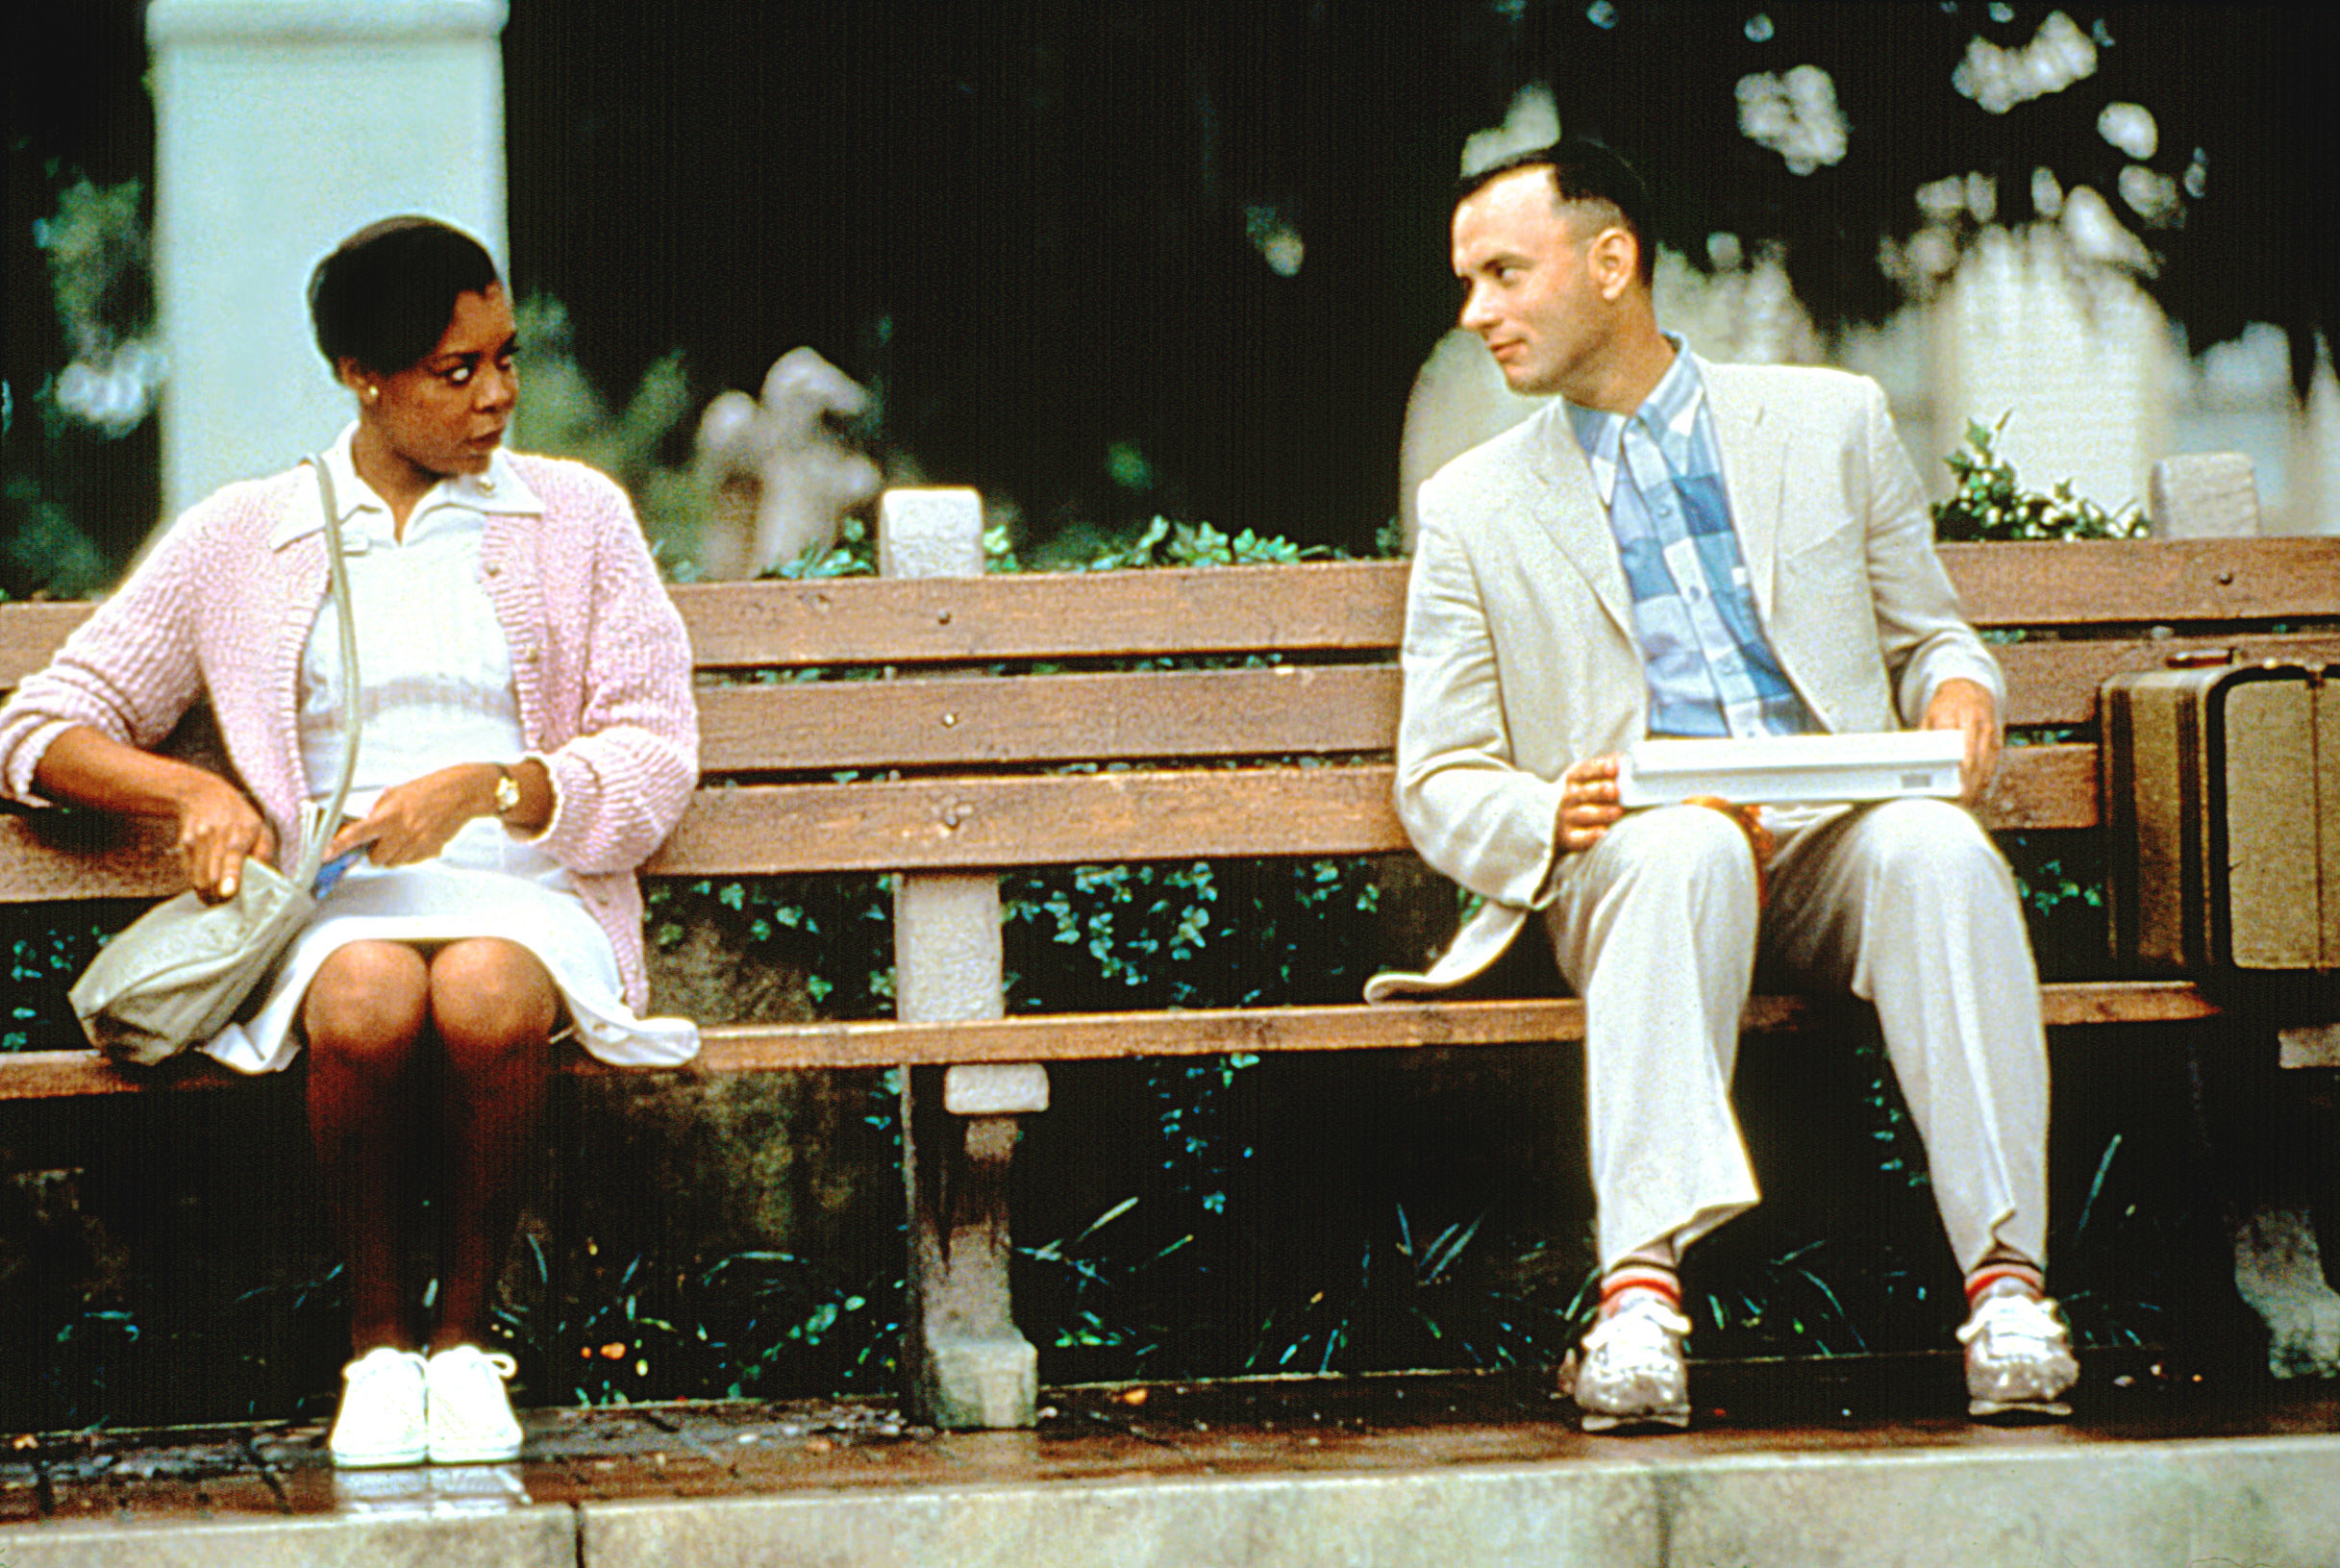 Forrest talking to a woman on the bench